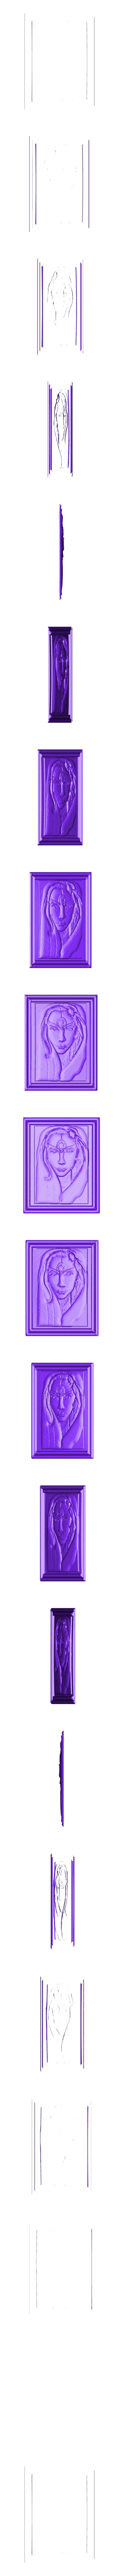 woman face.stl Download free STL file woman face • 3D printing object, marctull297